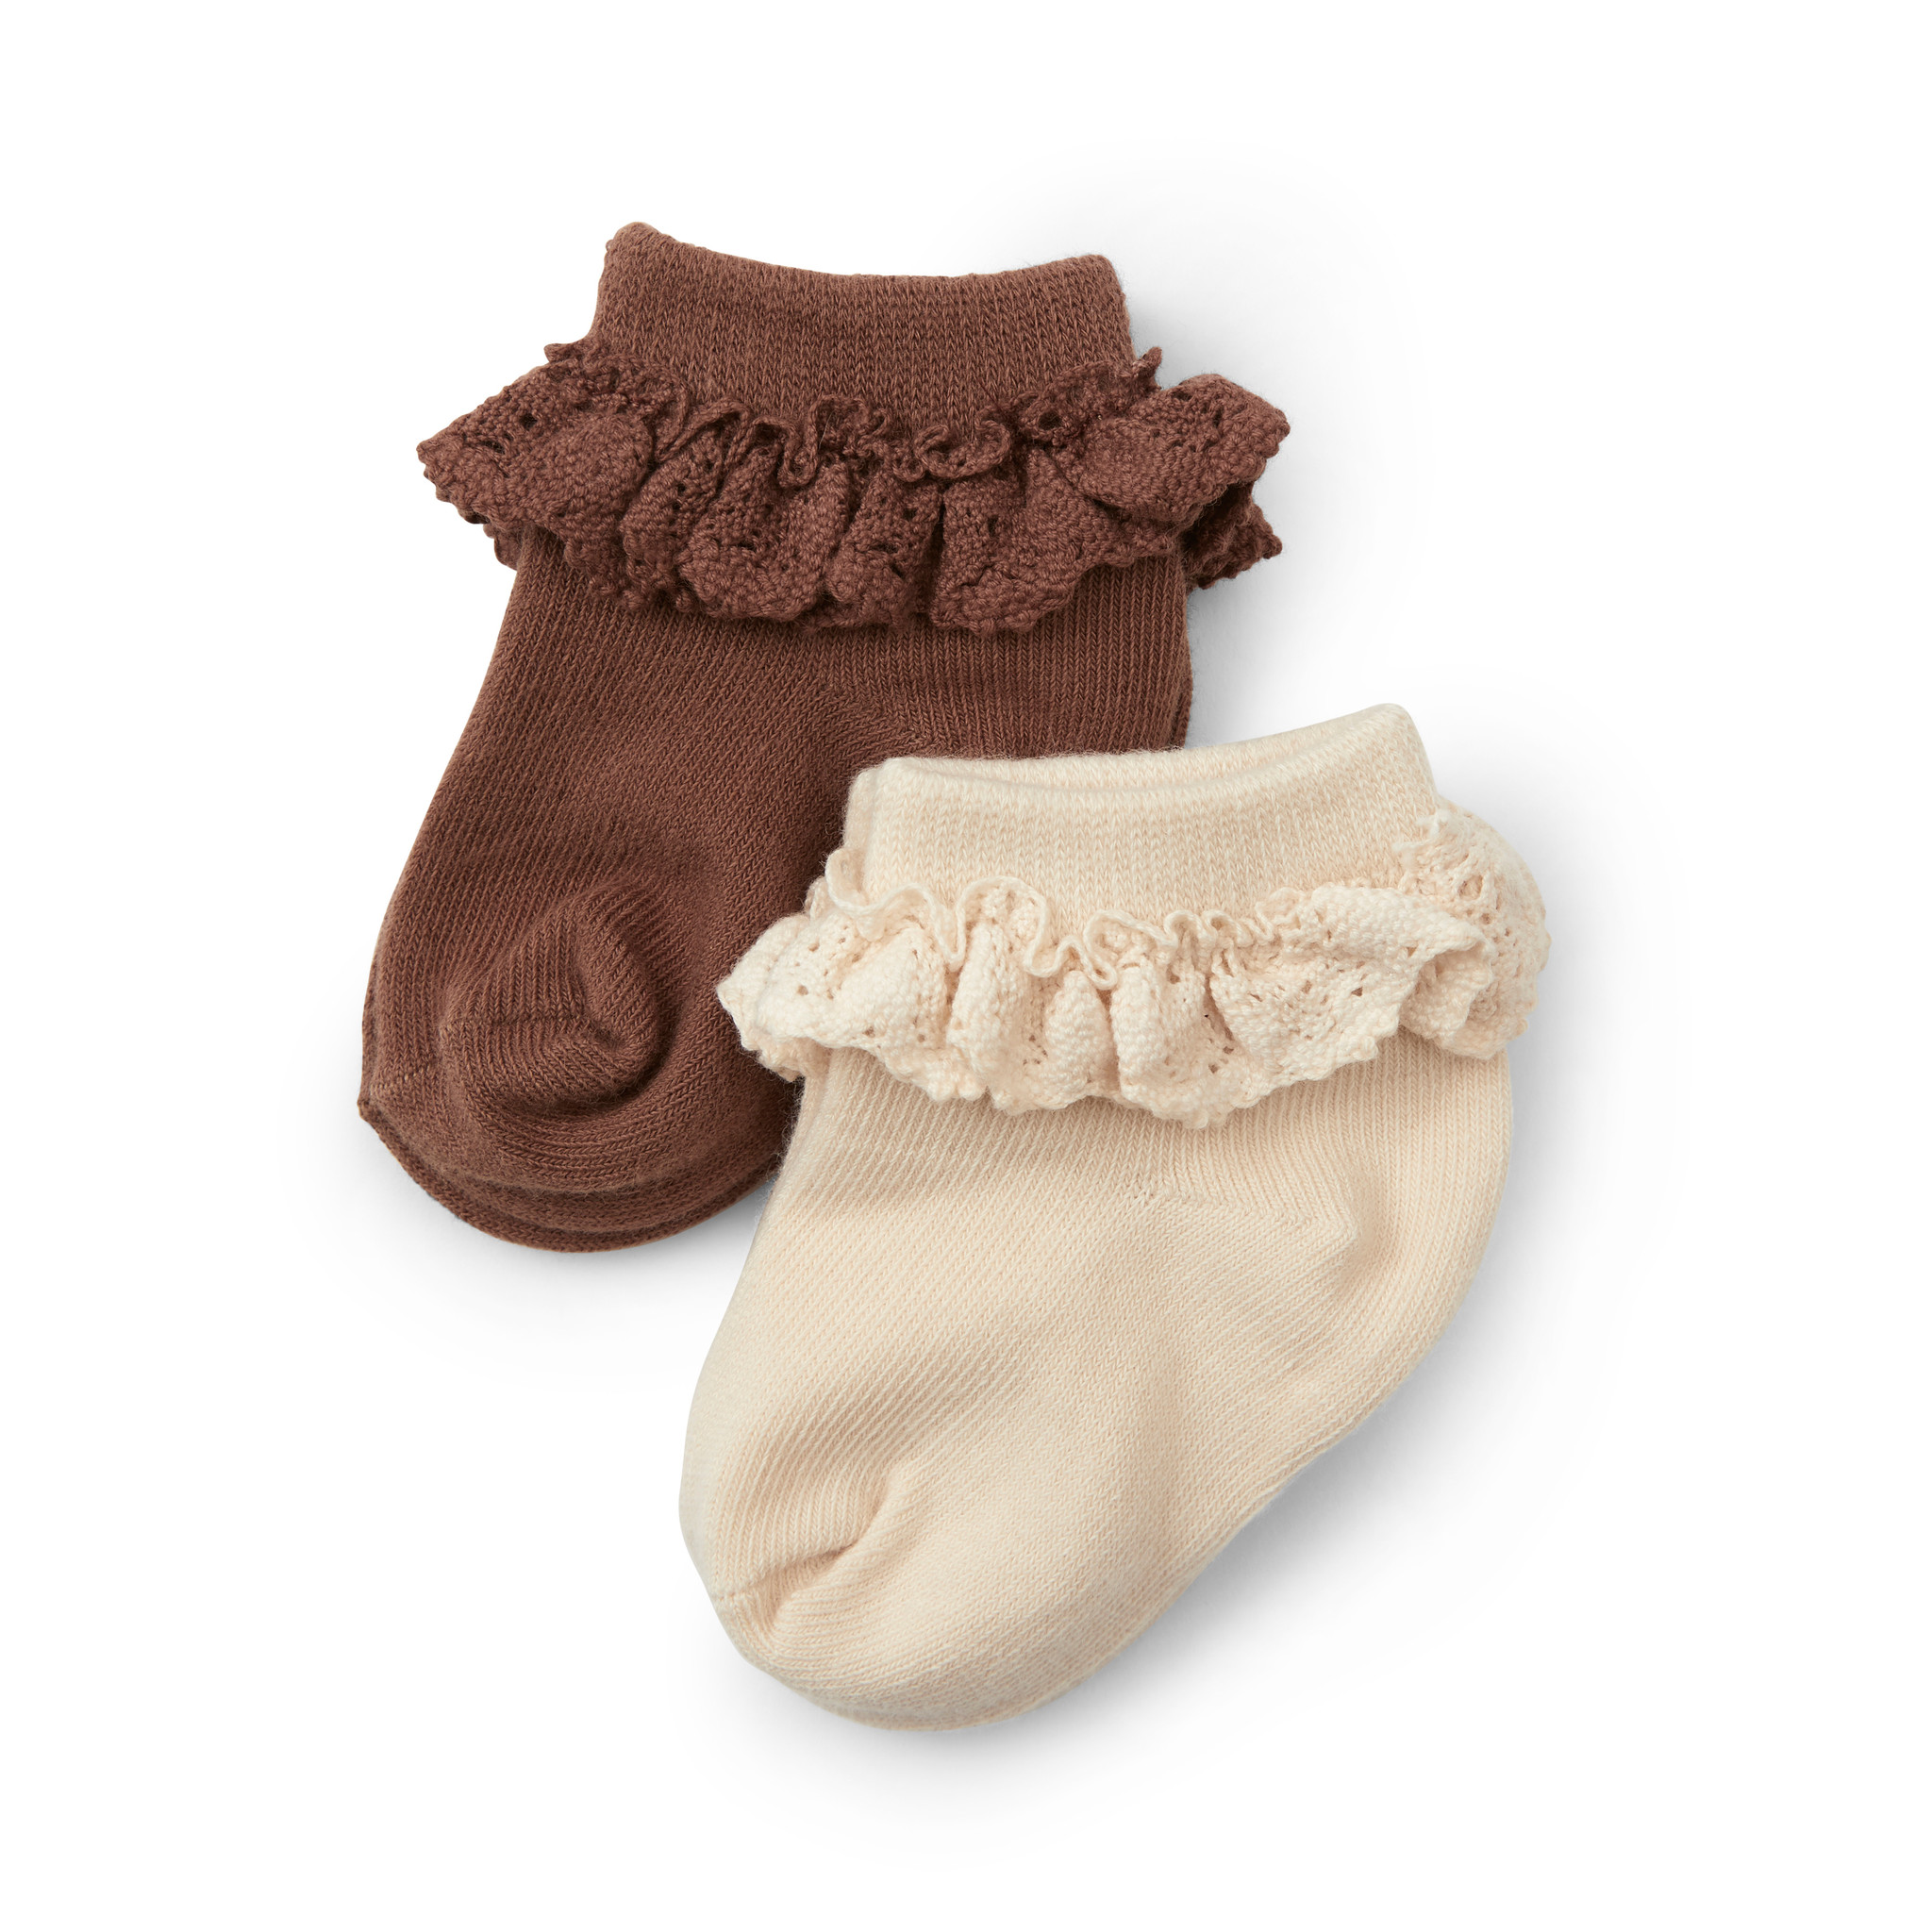 Konges Slojd 2 pairs of frill socks  - 75% organic cotton - nude/ red brown  - size 22 to 35